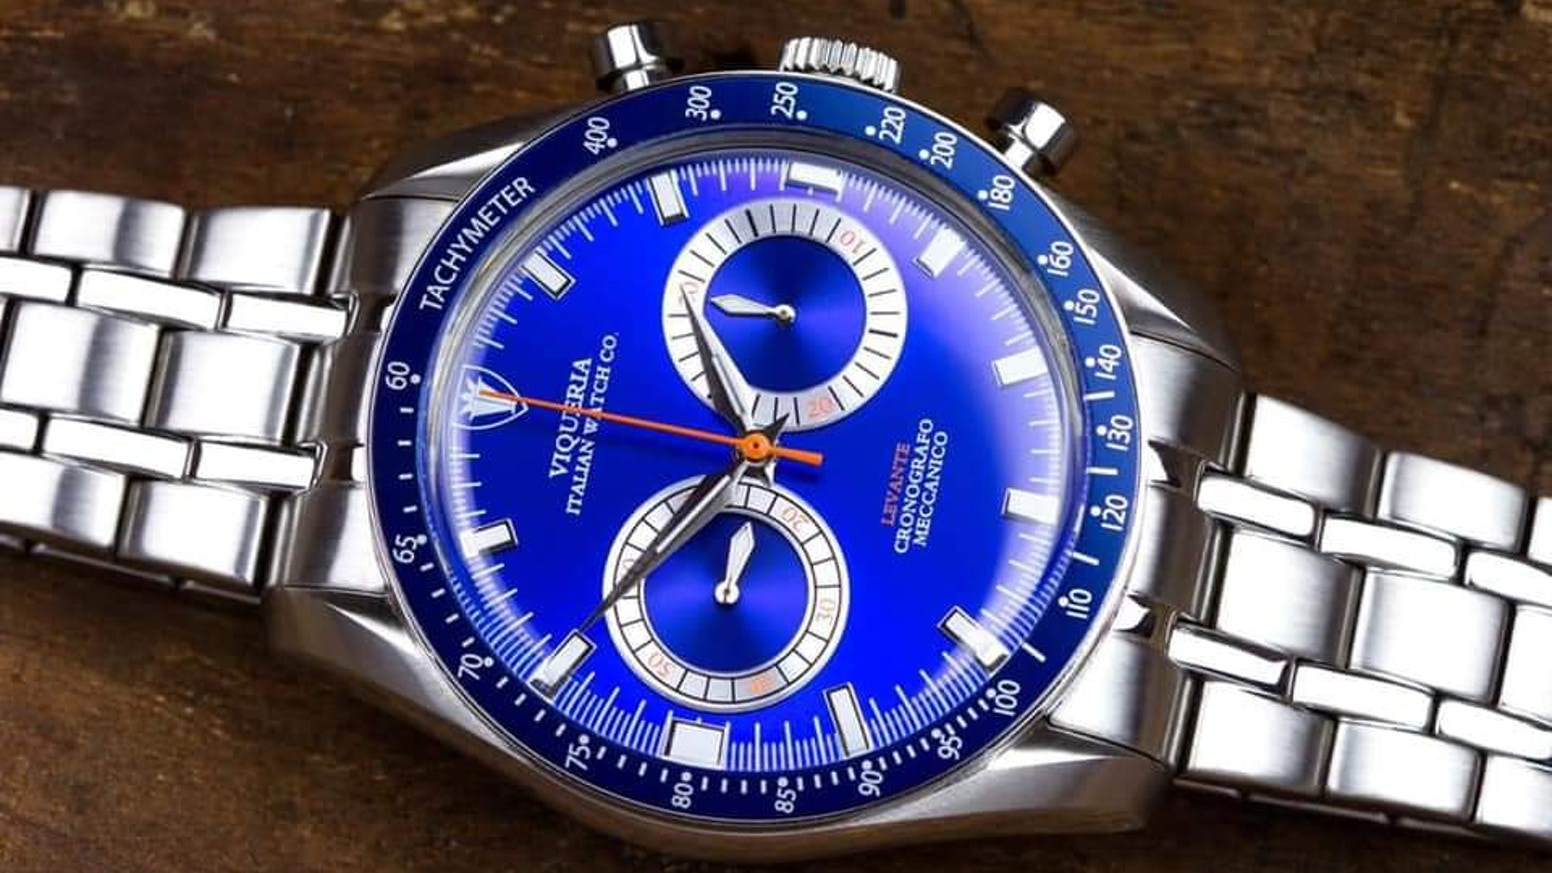 A unique racing chronograph assembled in Italy with a Swiss designed mechanical heart.  Join the hand-wound revolution! Join Levante!www.viqueriawatches.com